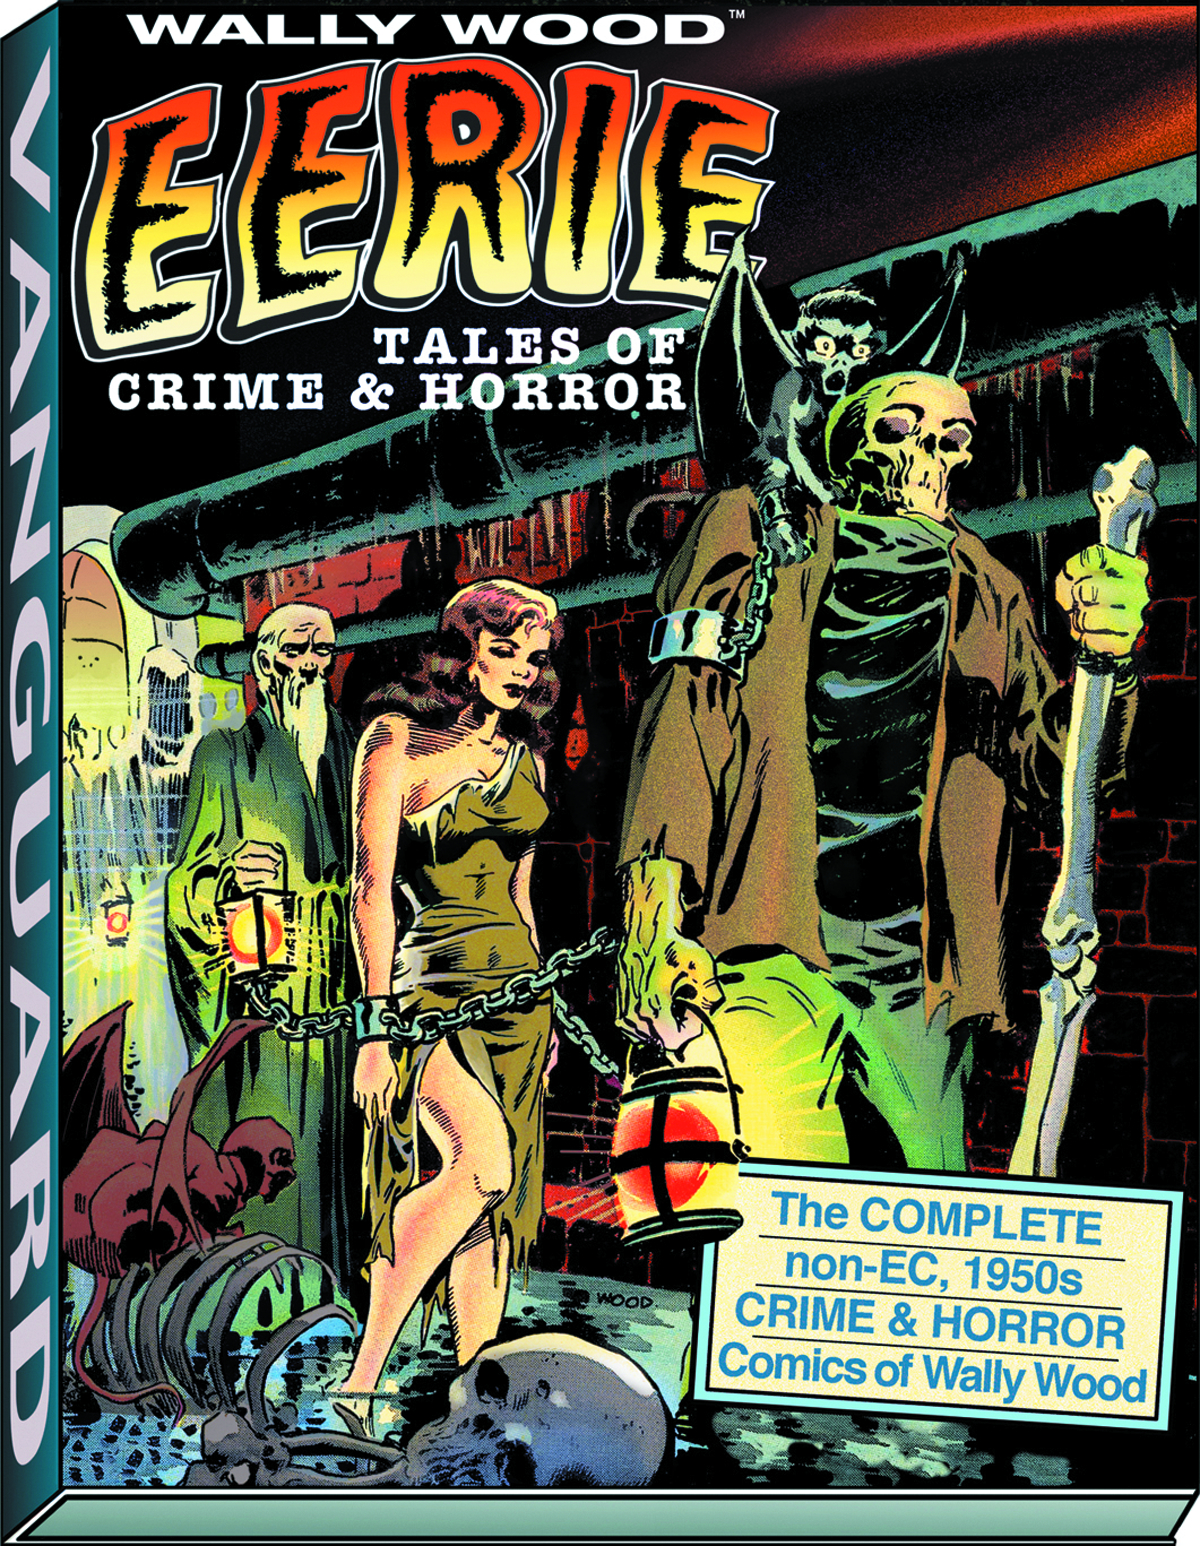 WALLY WOOD EERIE TALES OF CRIME & HORROR HC